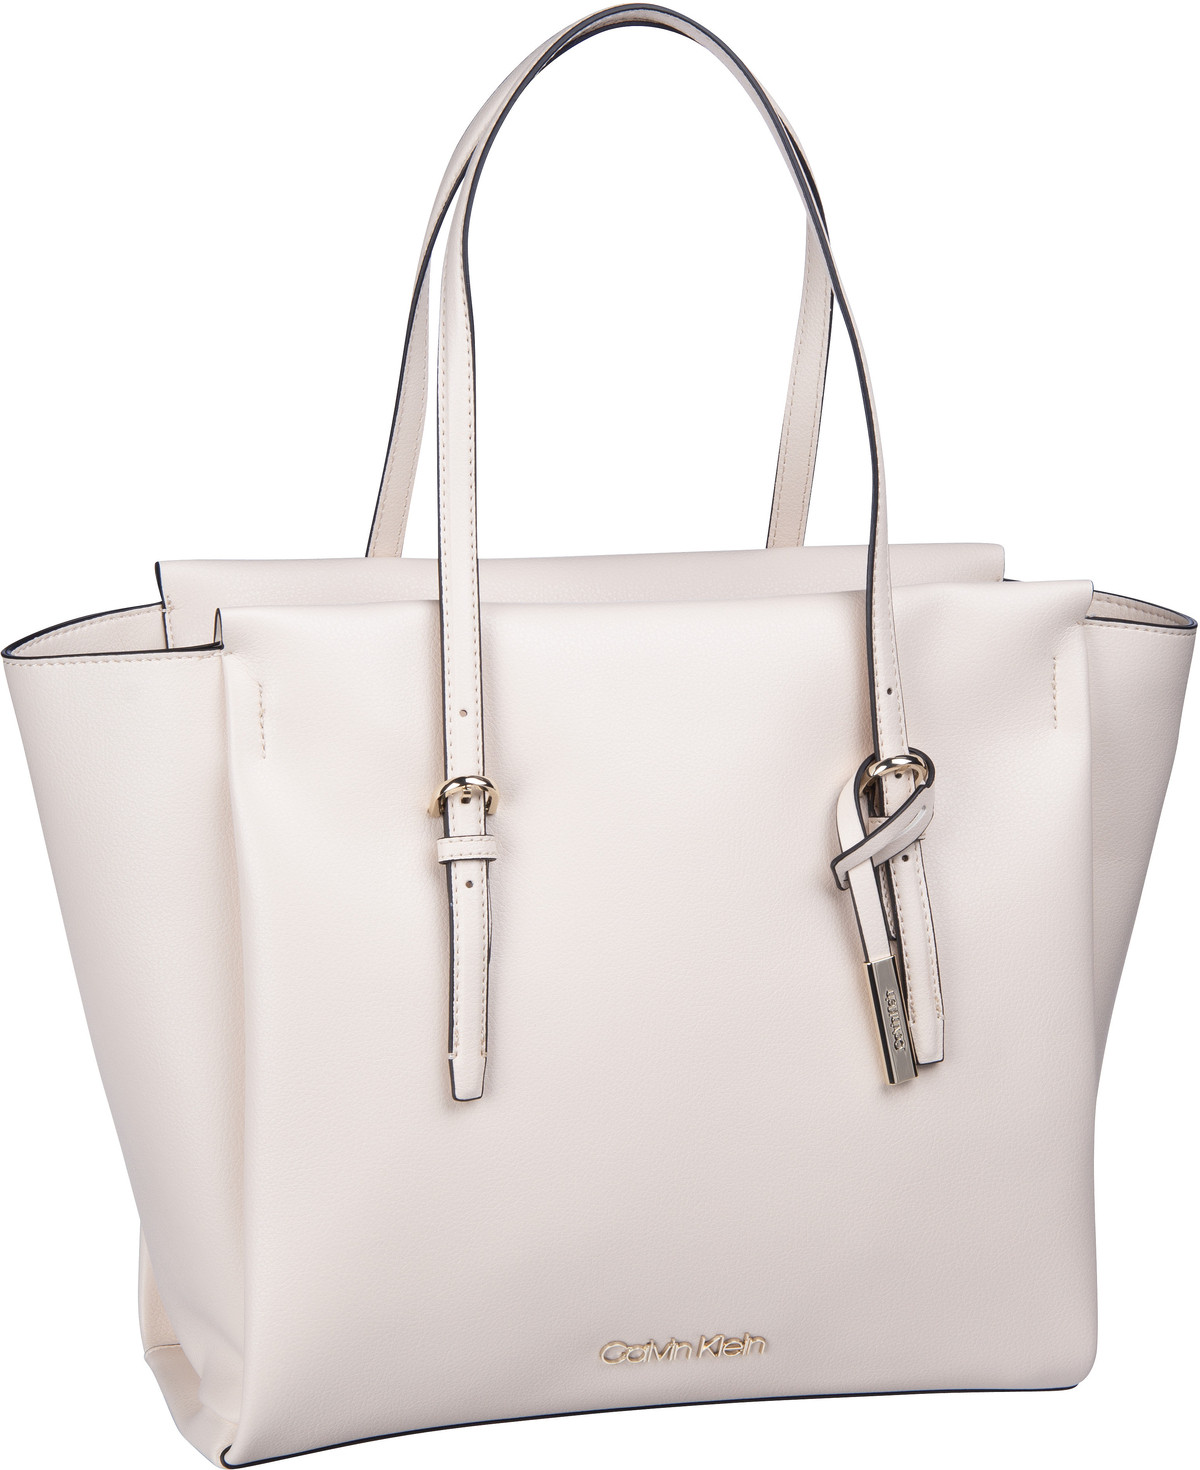 Handtasche Avant Large Shopper Light Sand